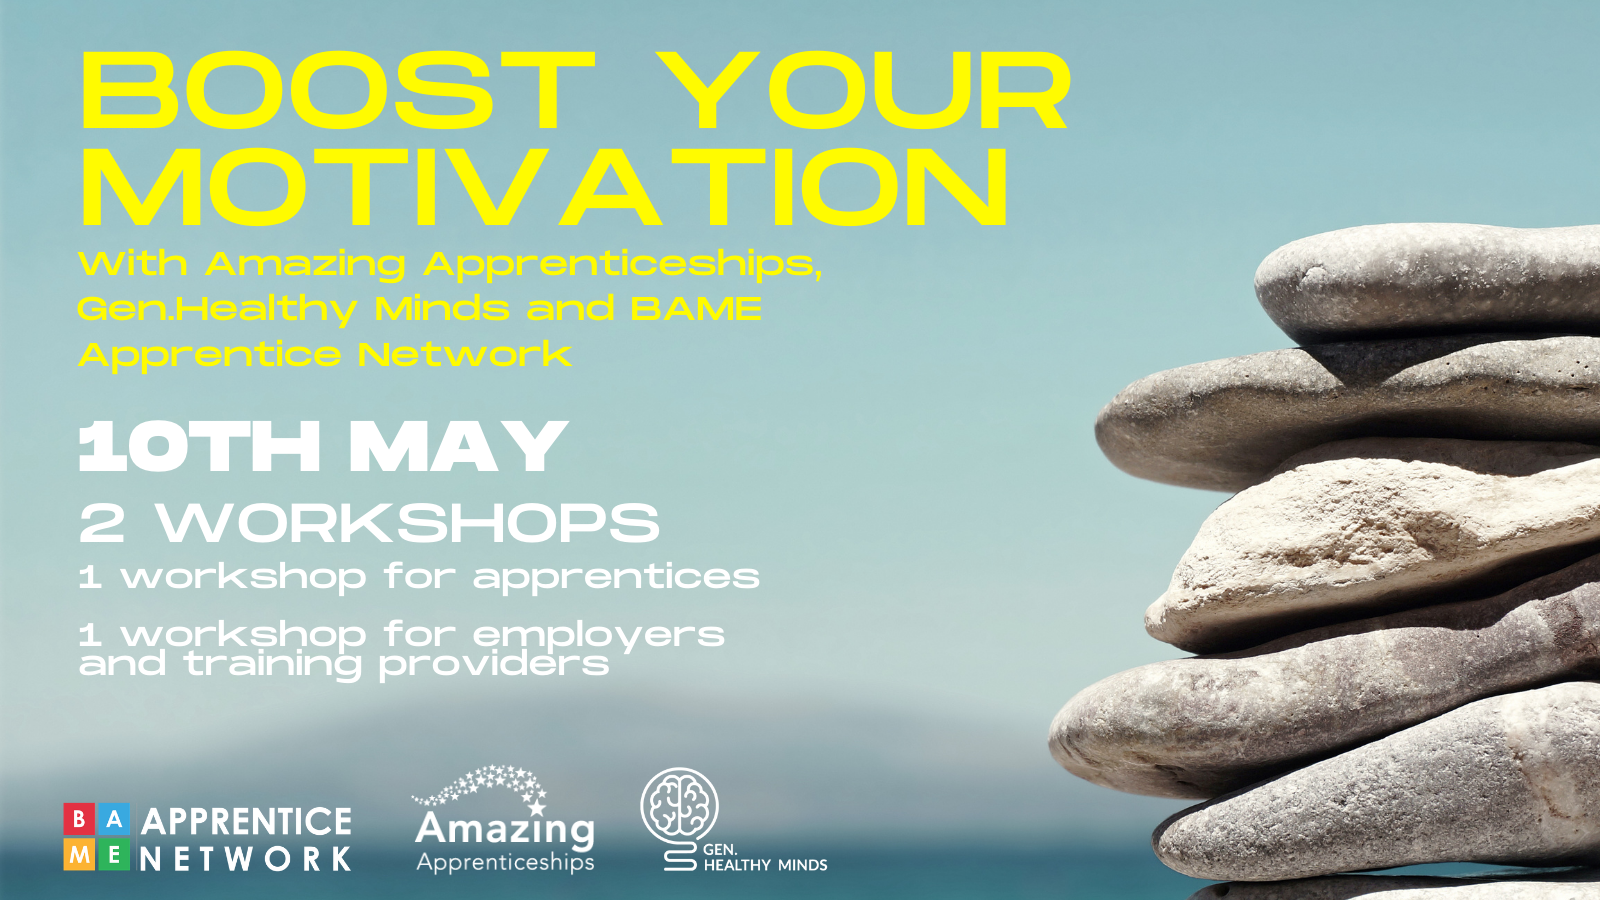 Amazing Apprenticeship poster for Boost Your Motivation workshop focusing on mental health 10th May